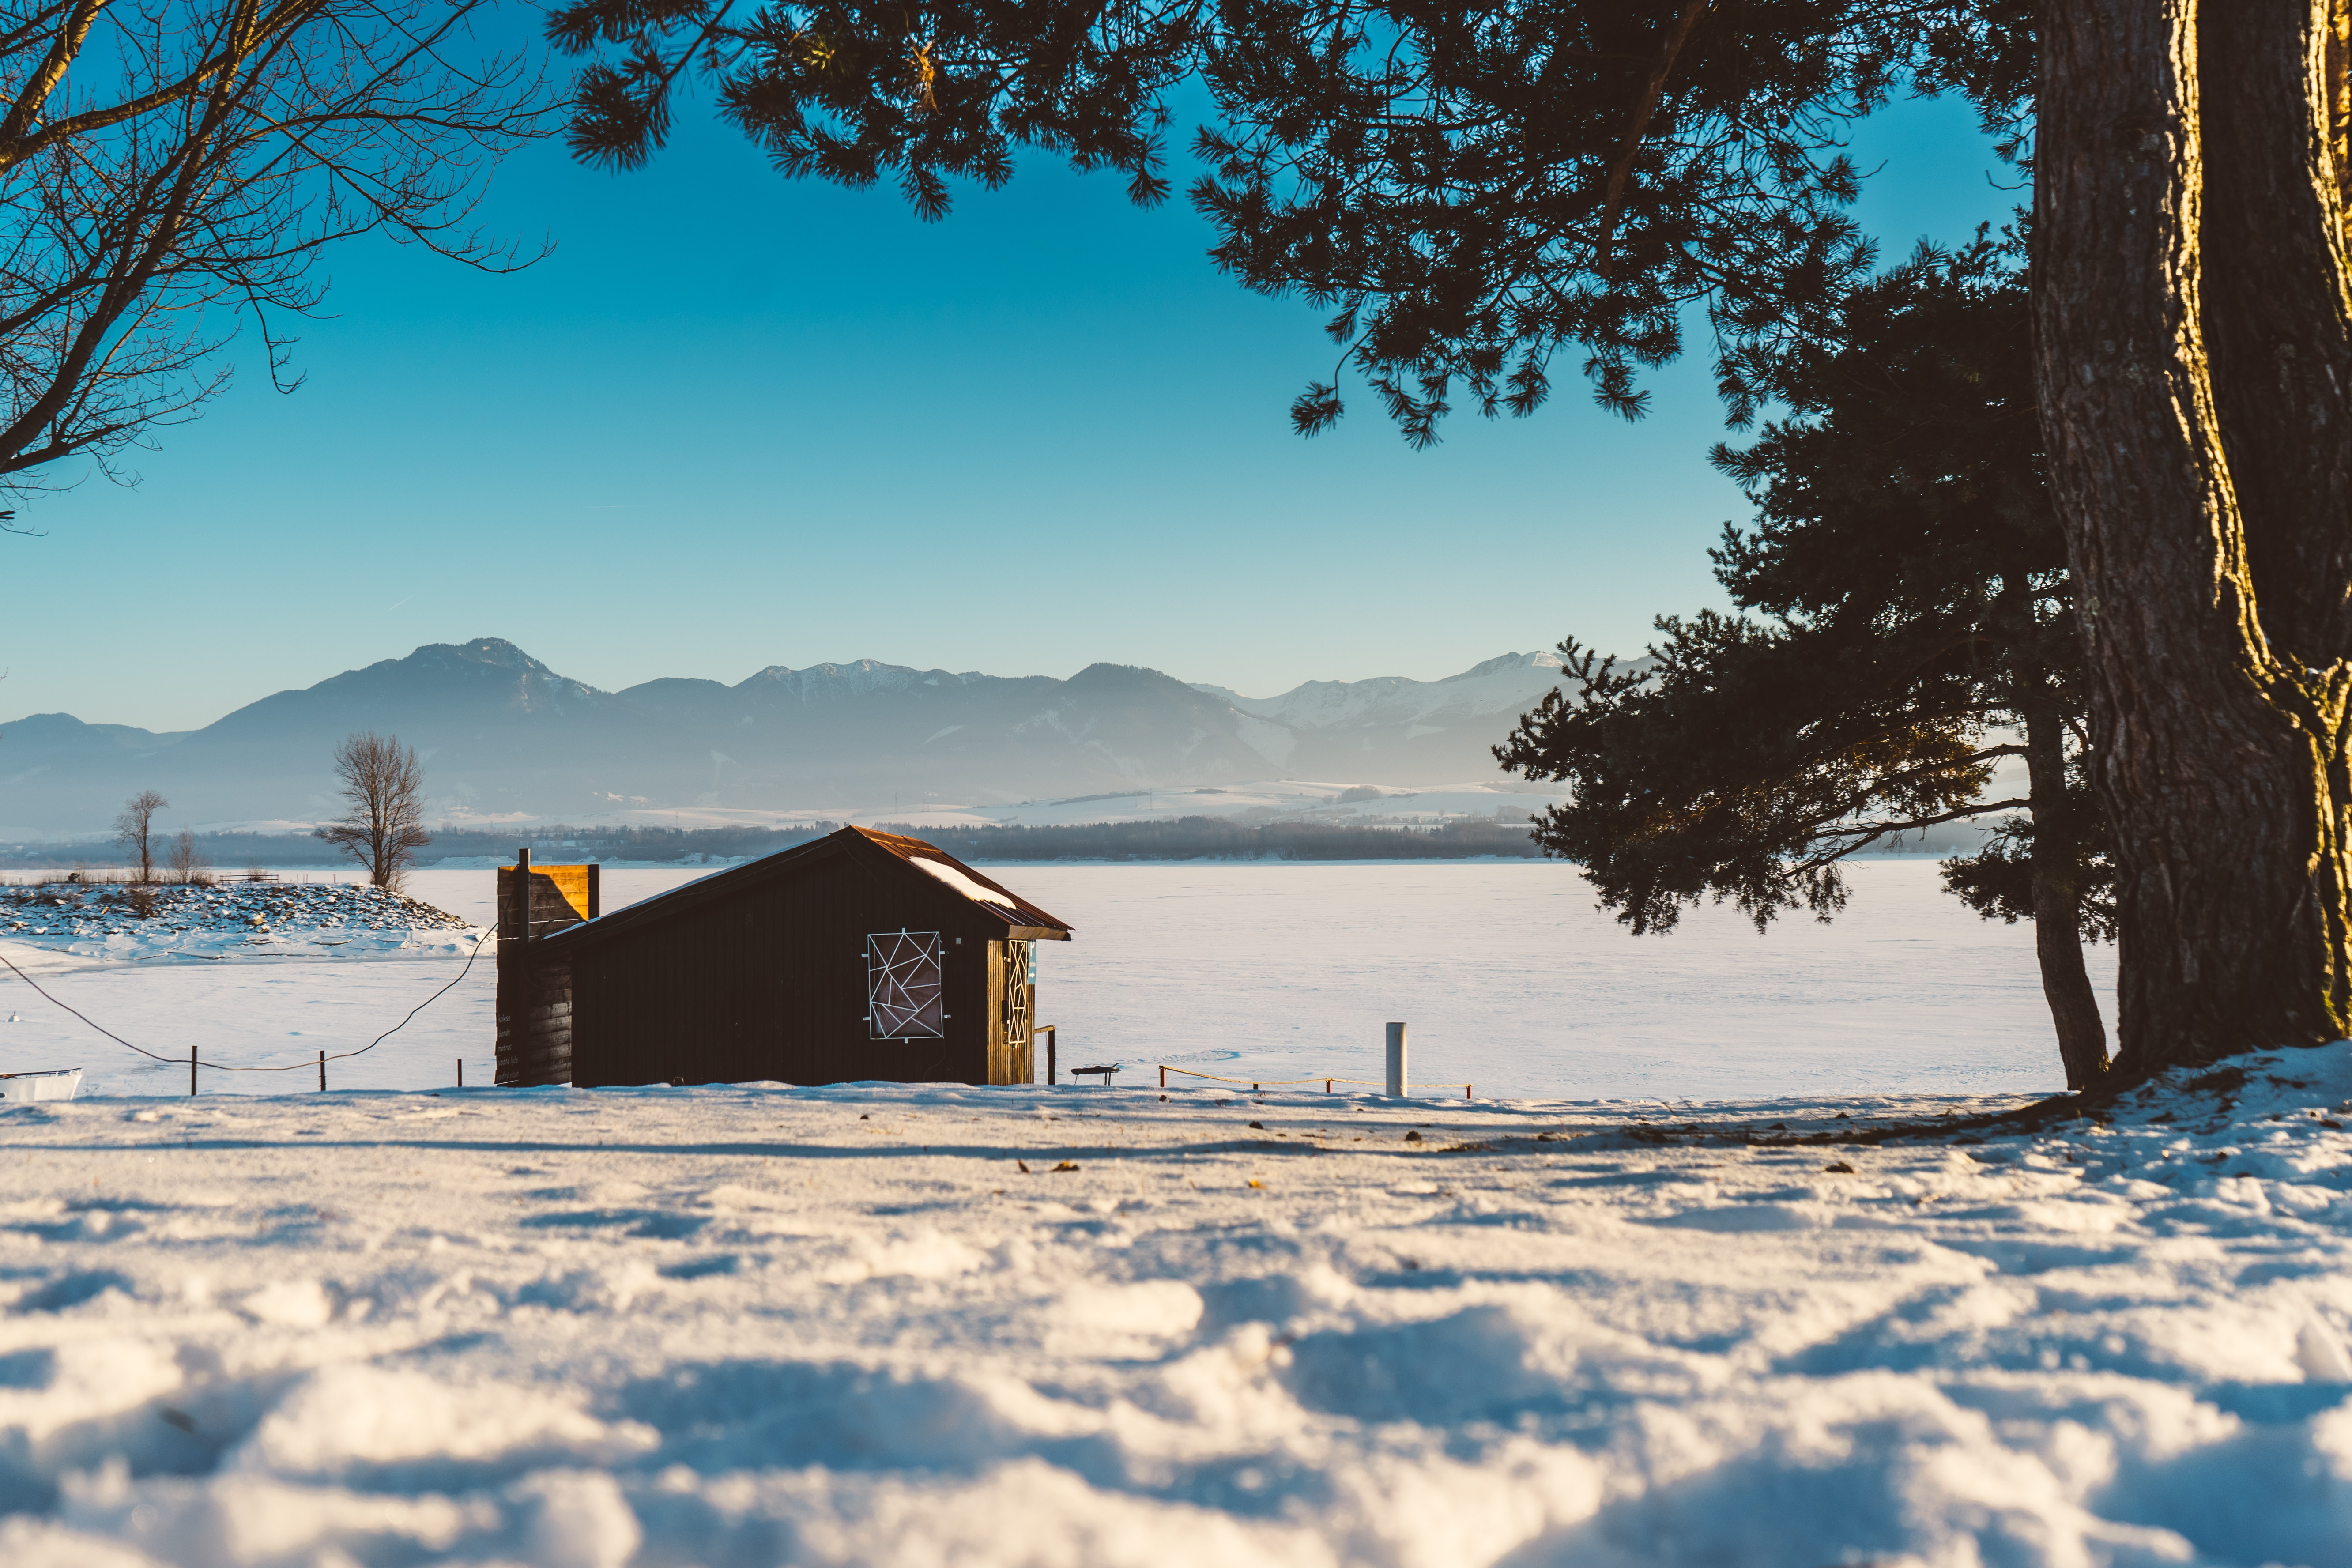 A winter shot of a shack at the bottom of mountains in Liptovský Trnovec, Slovakia